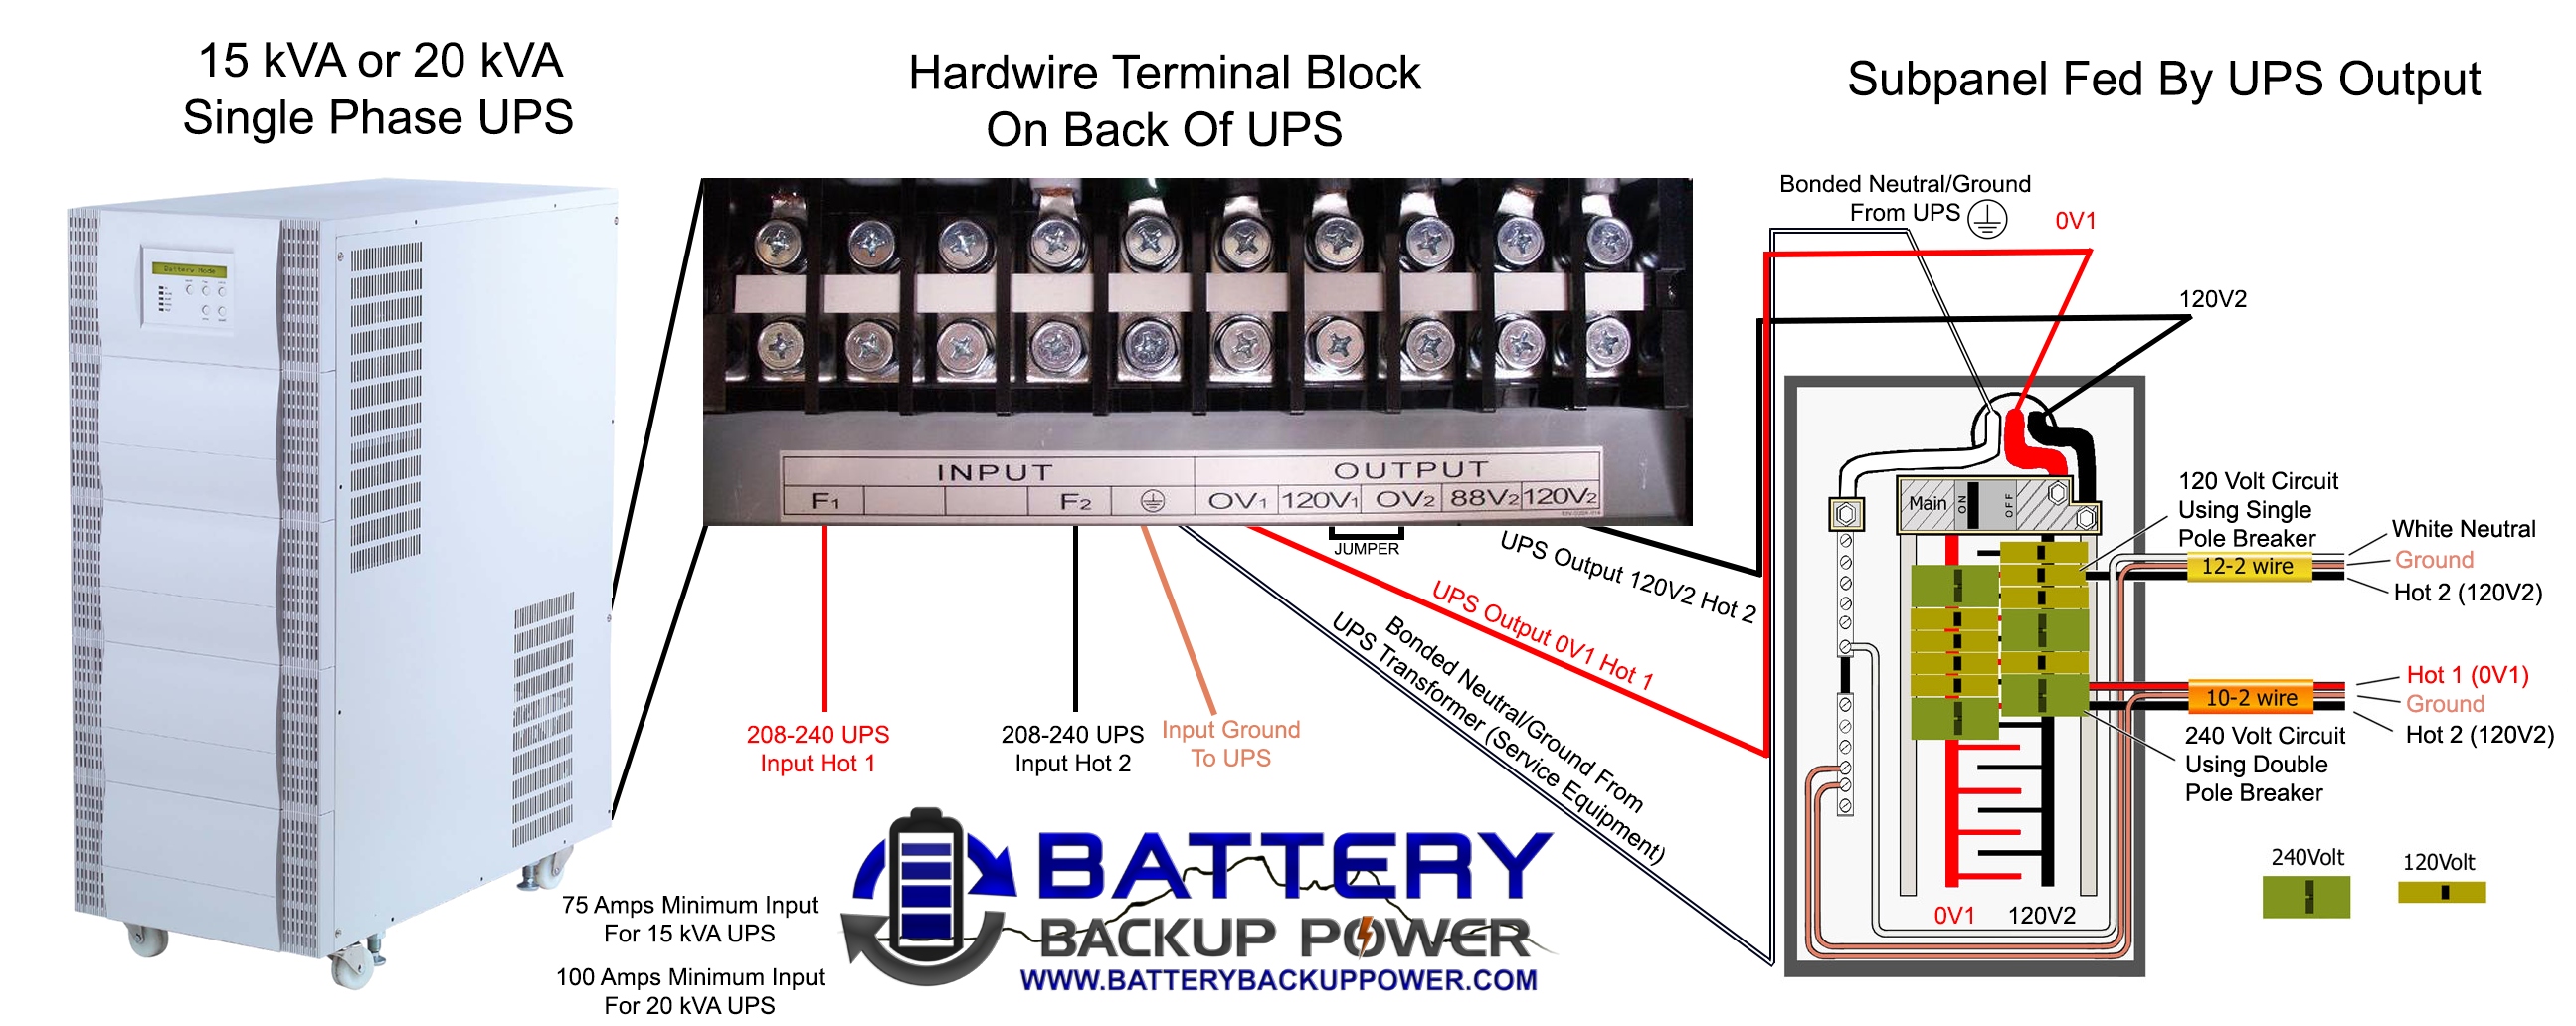 hight resolution of how to wire a 15 kva or 20 kva ups to a subpanel to provide real time backup power to all circuits connected to the subpanel this is an example